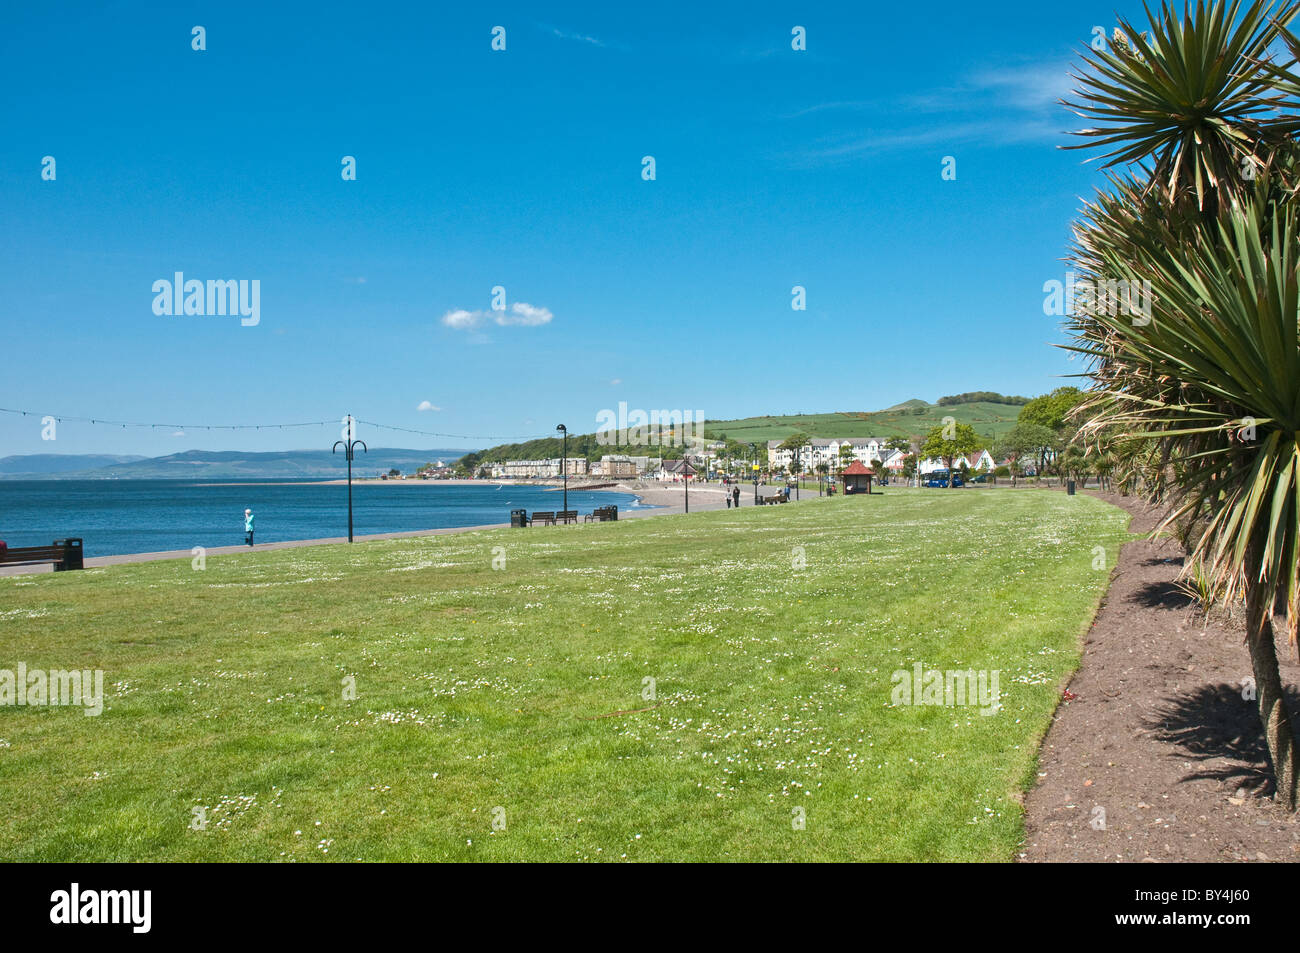 Promenade Largs North Ayrshire Scotland - Stock Image